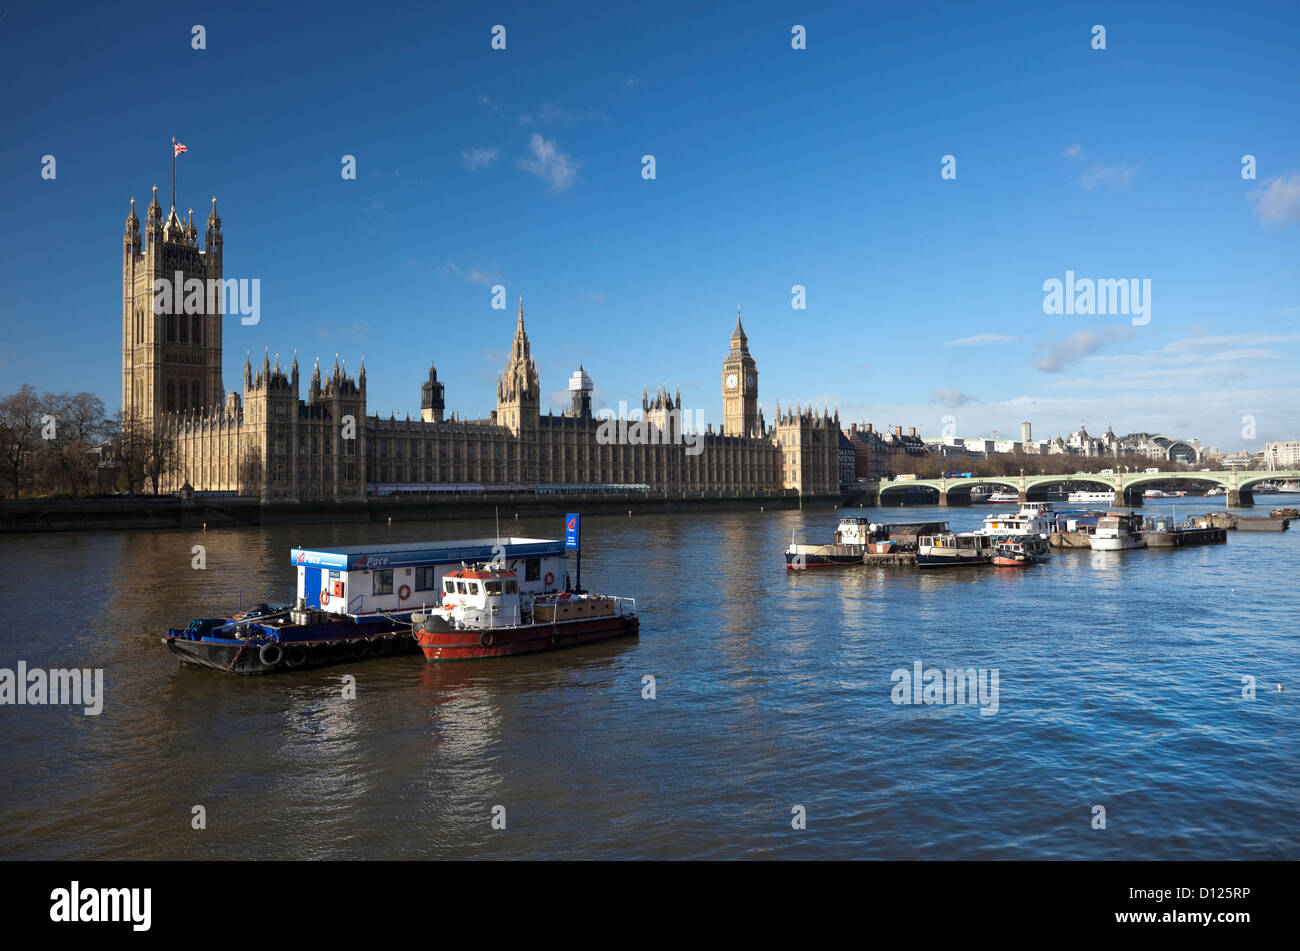 The River Thames and the Palace of Westminster, London, England, UK - Stock Image